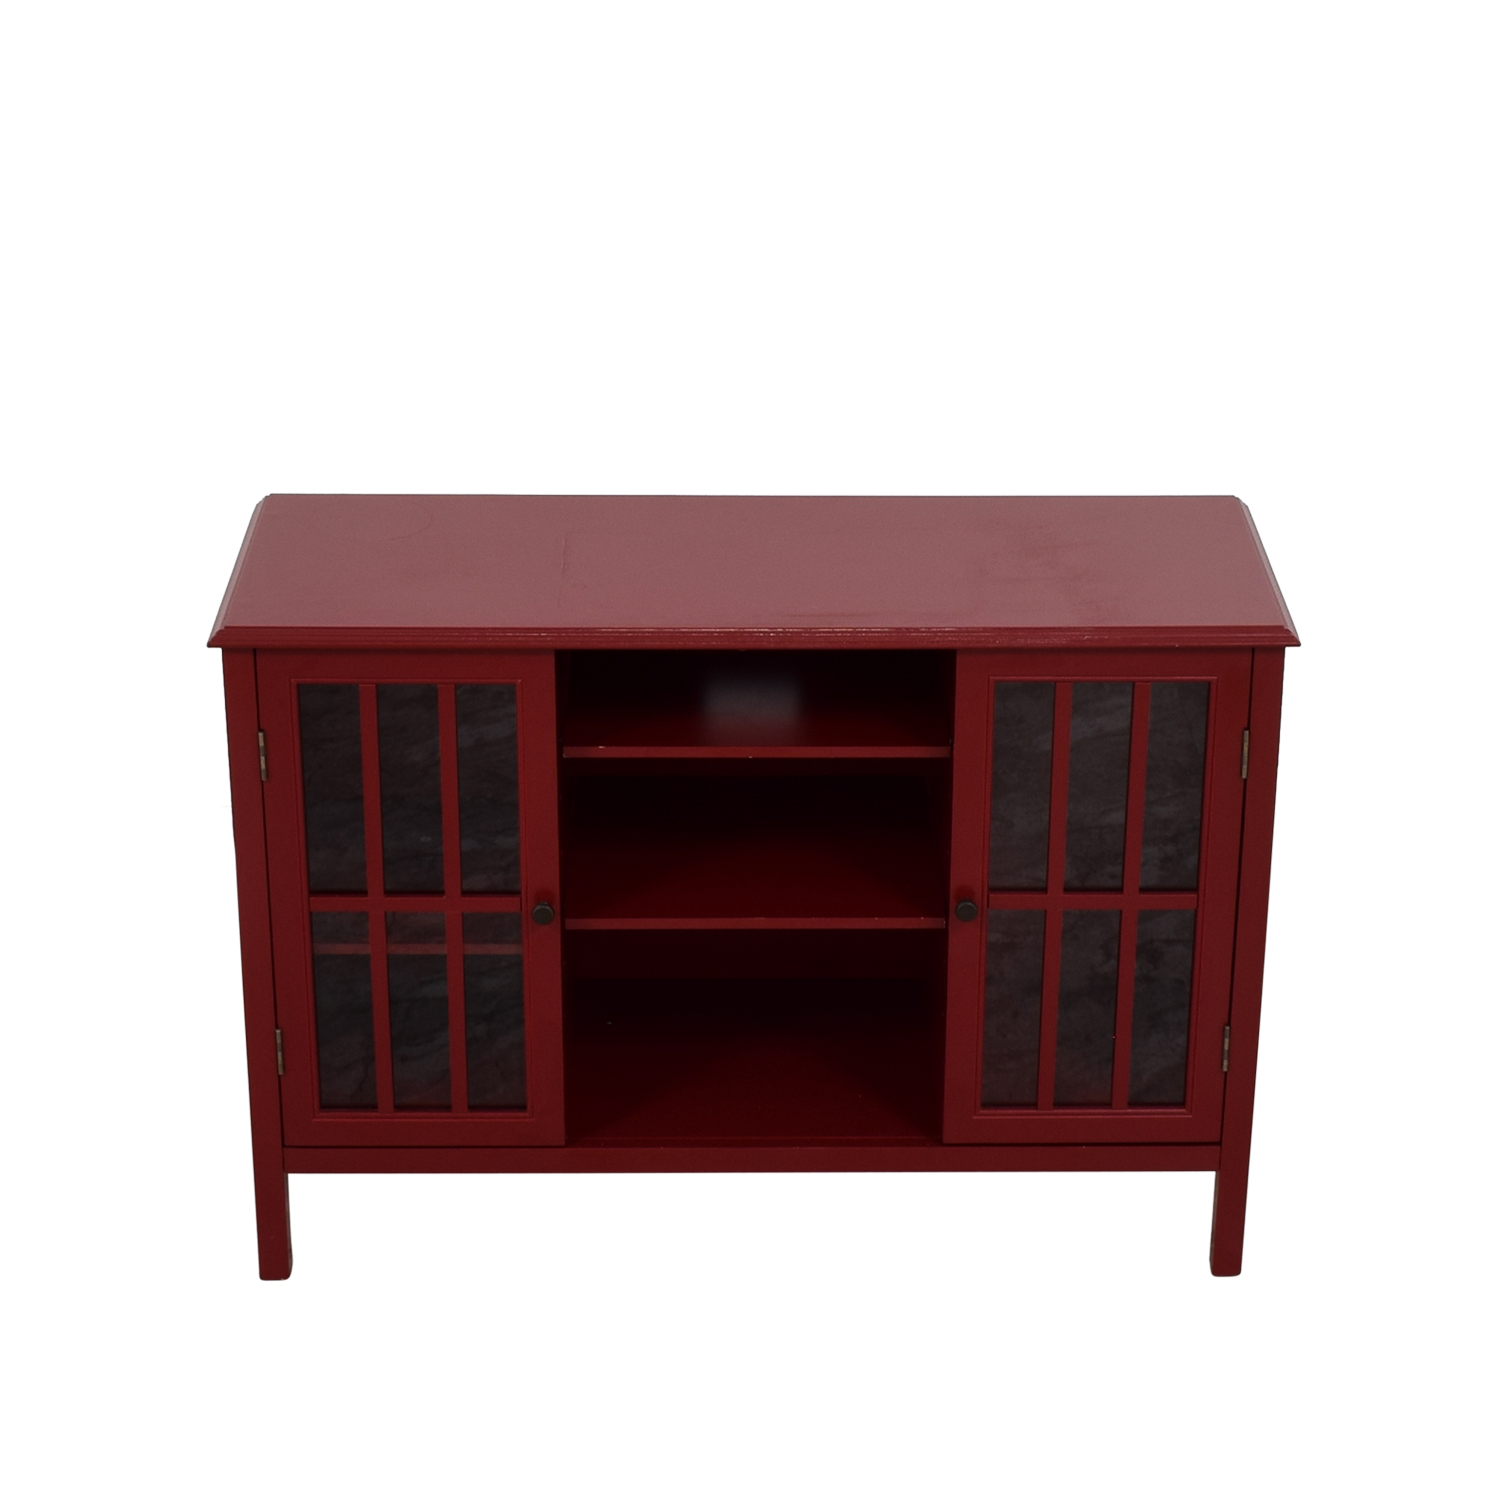 Target Target Windham Two Door Cabinet With Shelves Dimensions